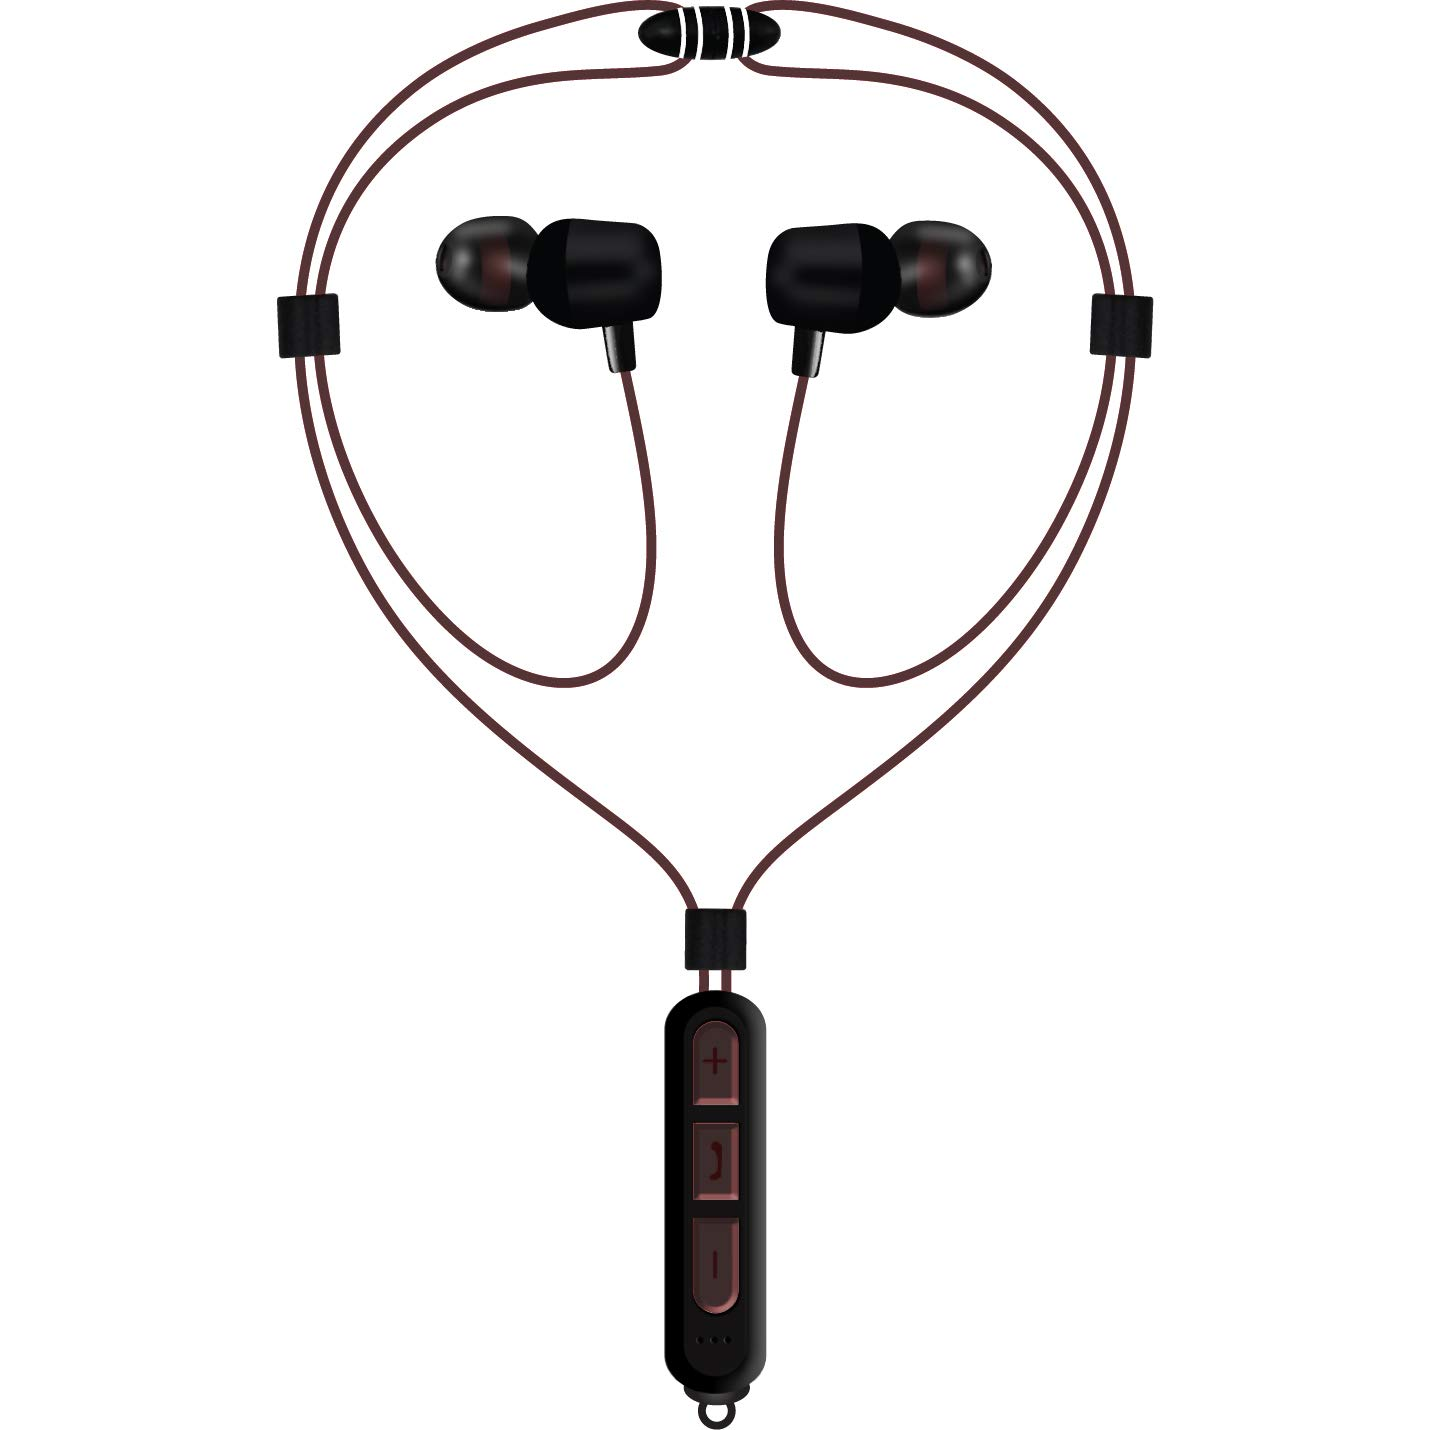 91c09ea4095 PSYTECH 4D Bass Magnetic Series Wireless Bluetooth Earphones with Stereo  Sound,Hands-Free Mic and tf Card Slot (Black) - DealsCargo : Delivering  Loots